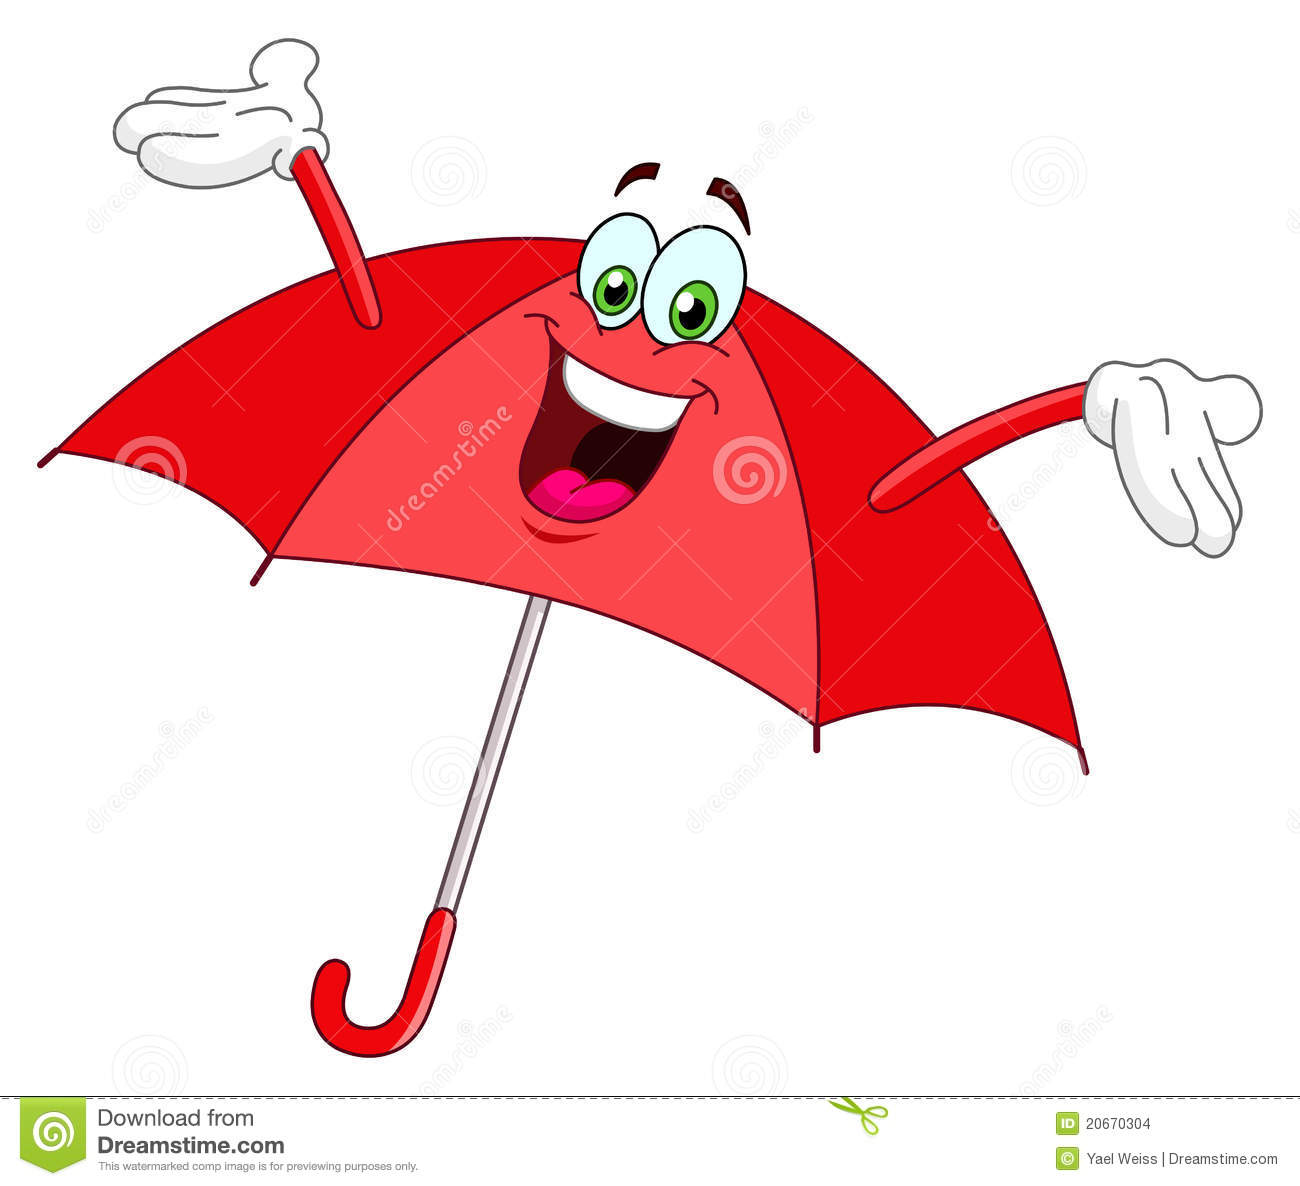 Umbrella Cartoon Stock Images - Image: 20670304